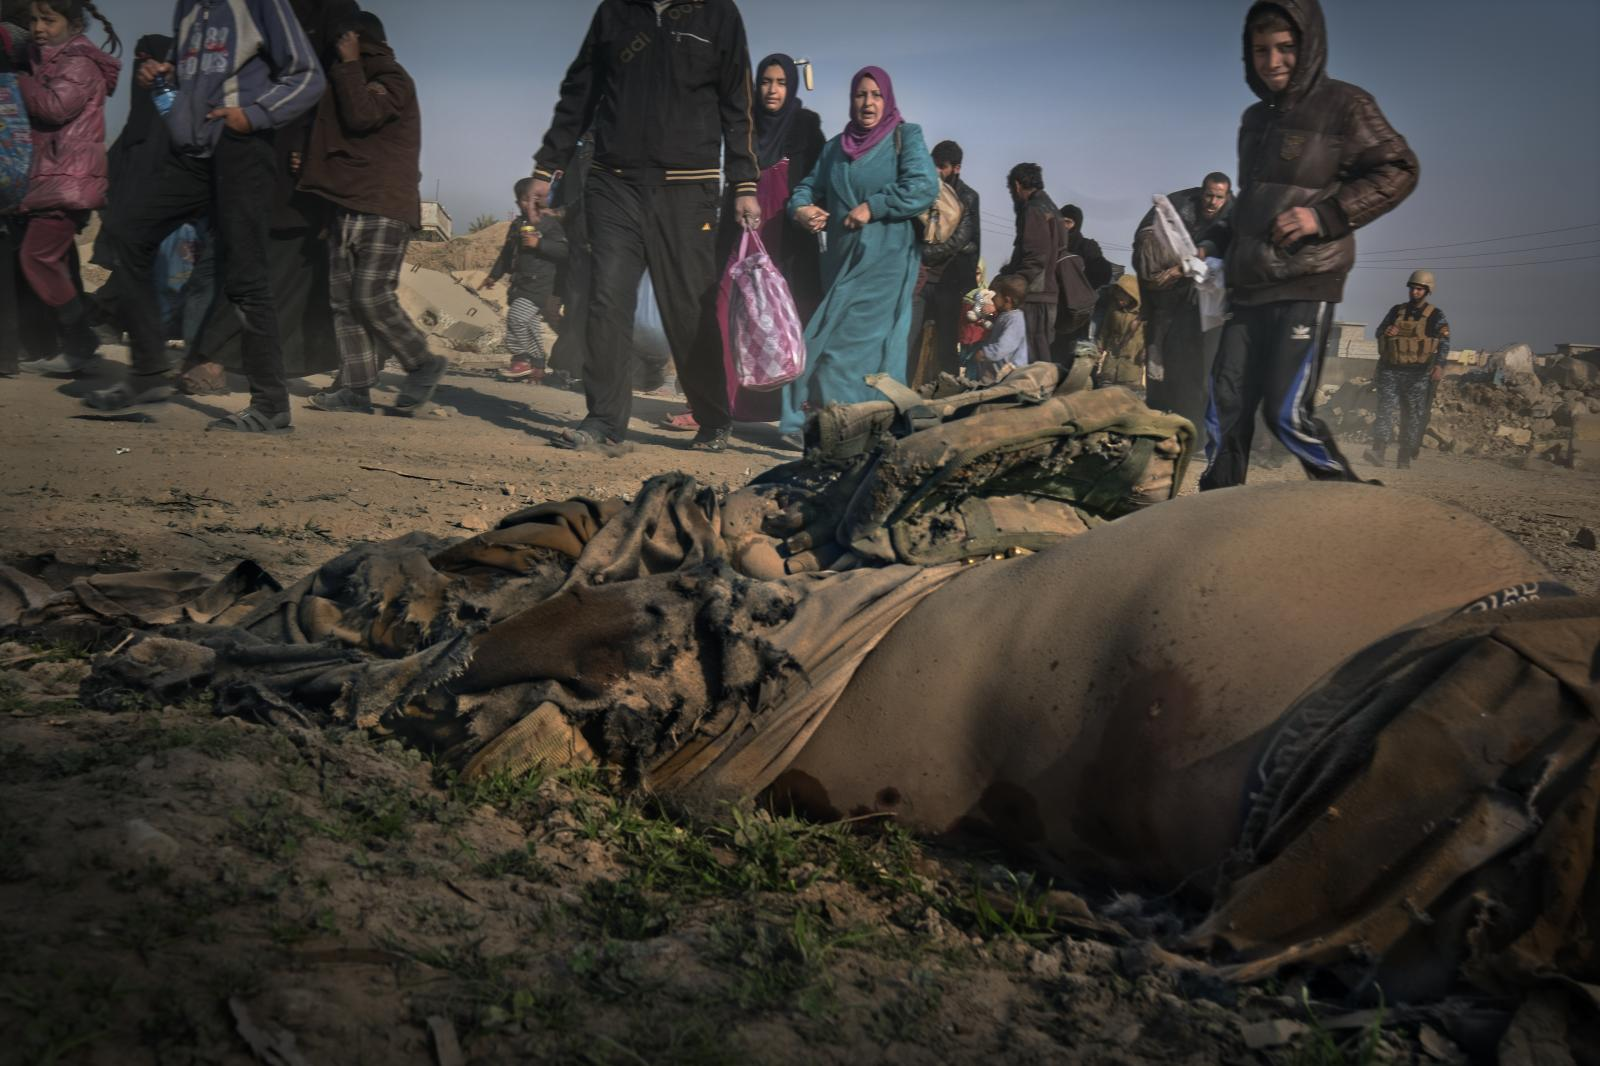 The corpse of an ISIS jihadist lies on the ground while refugees from Mosul attempt to escape escorted by the Federal Police ( elite units of the Iraqi Security Forces ) with the few belongings they still have, taking the road to the airport (Iraq, 2017)